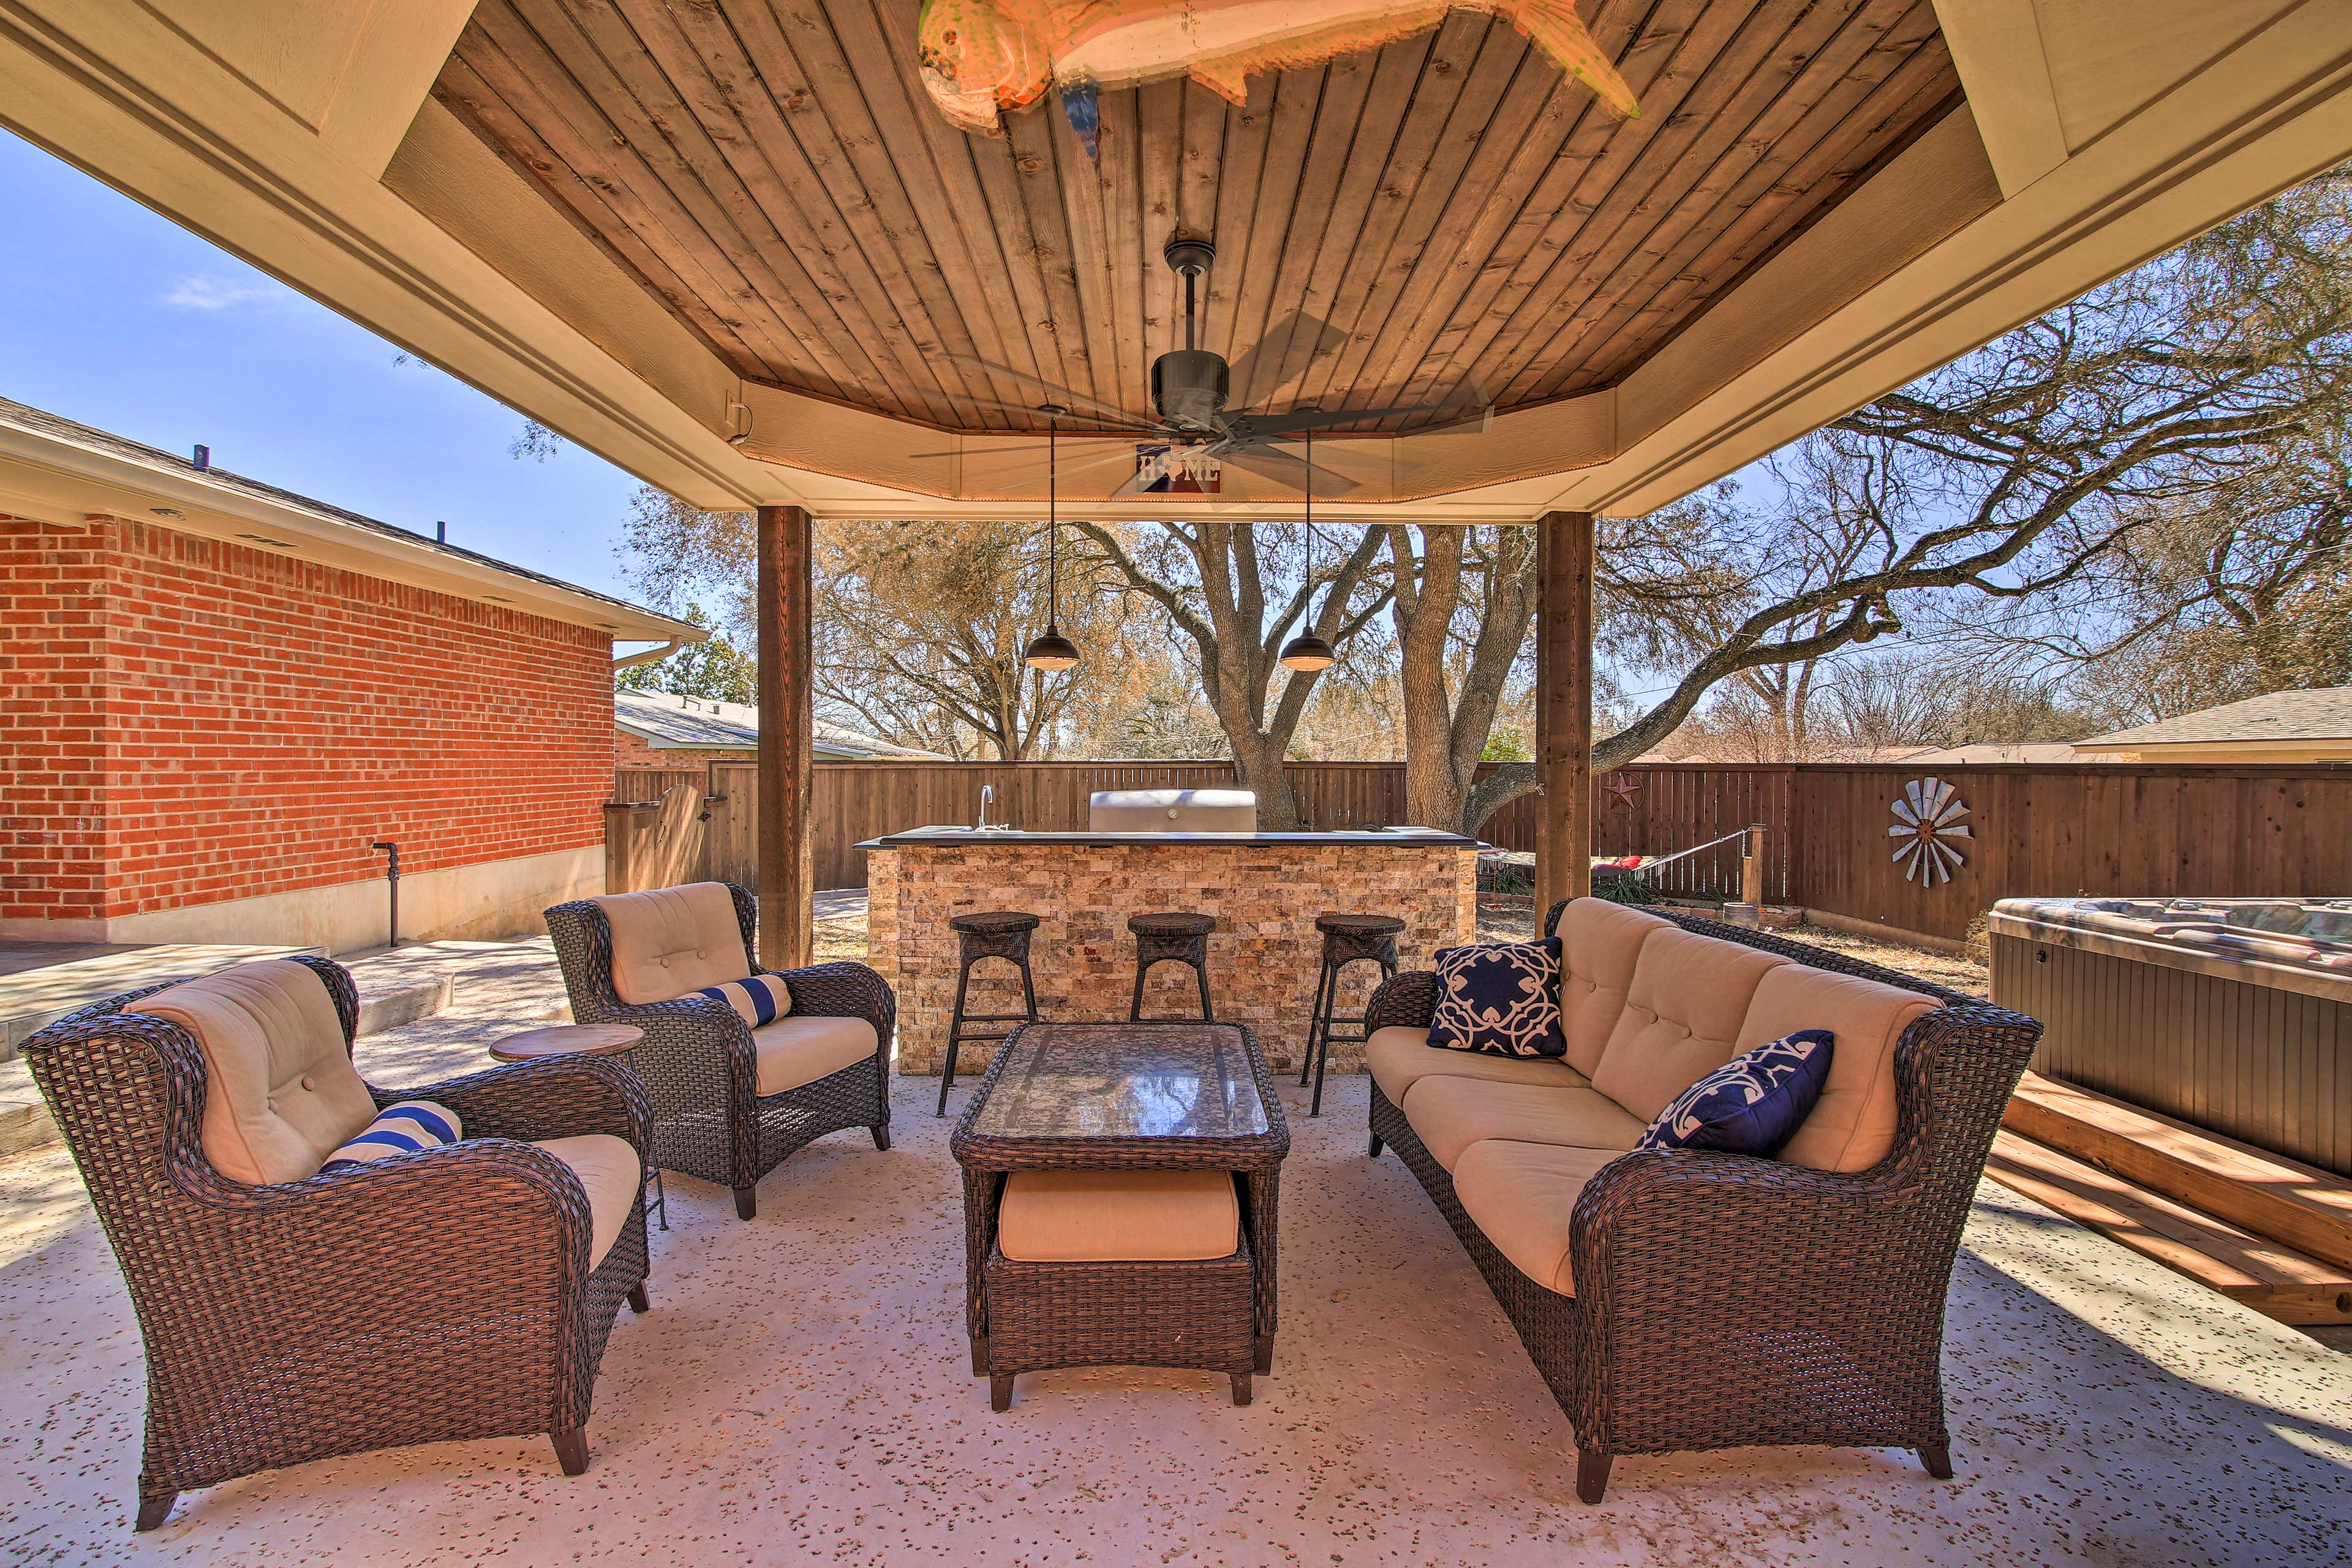 Gazebo | Outdoor Living Room | Built-In Gas Grill